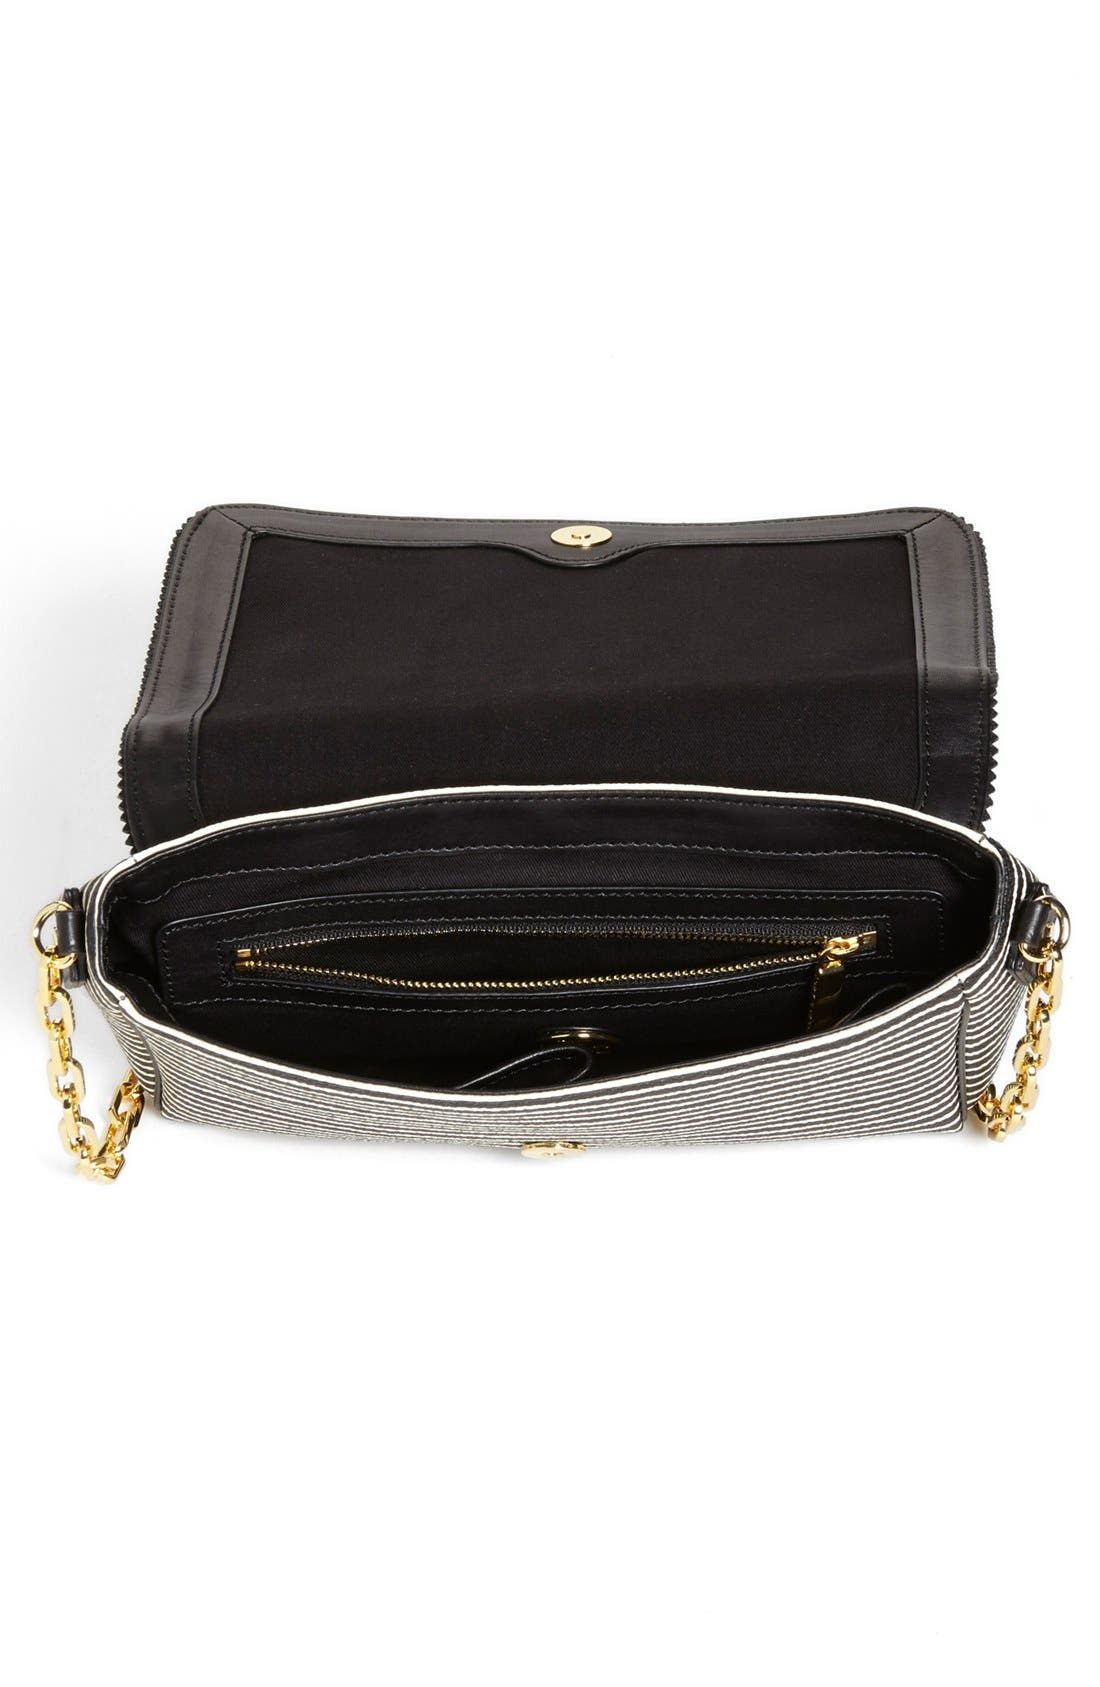 Alternate Image 3  - Tory Burch 'Viva' Canvas & Leather Crossbody Bag